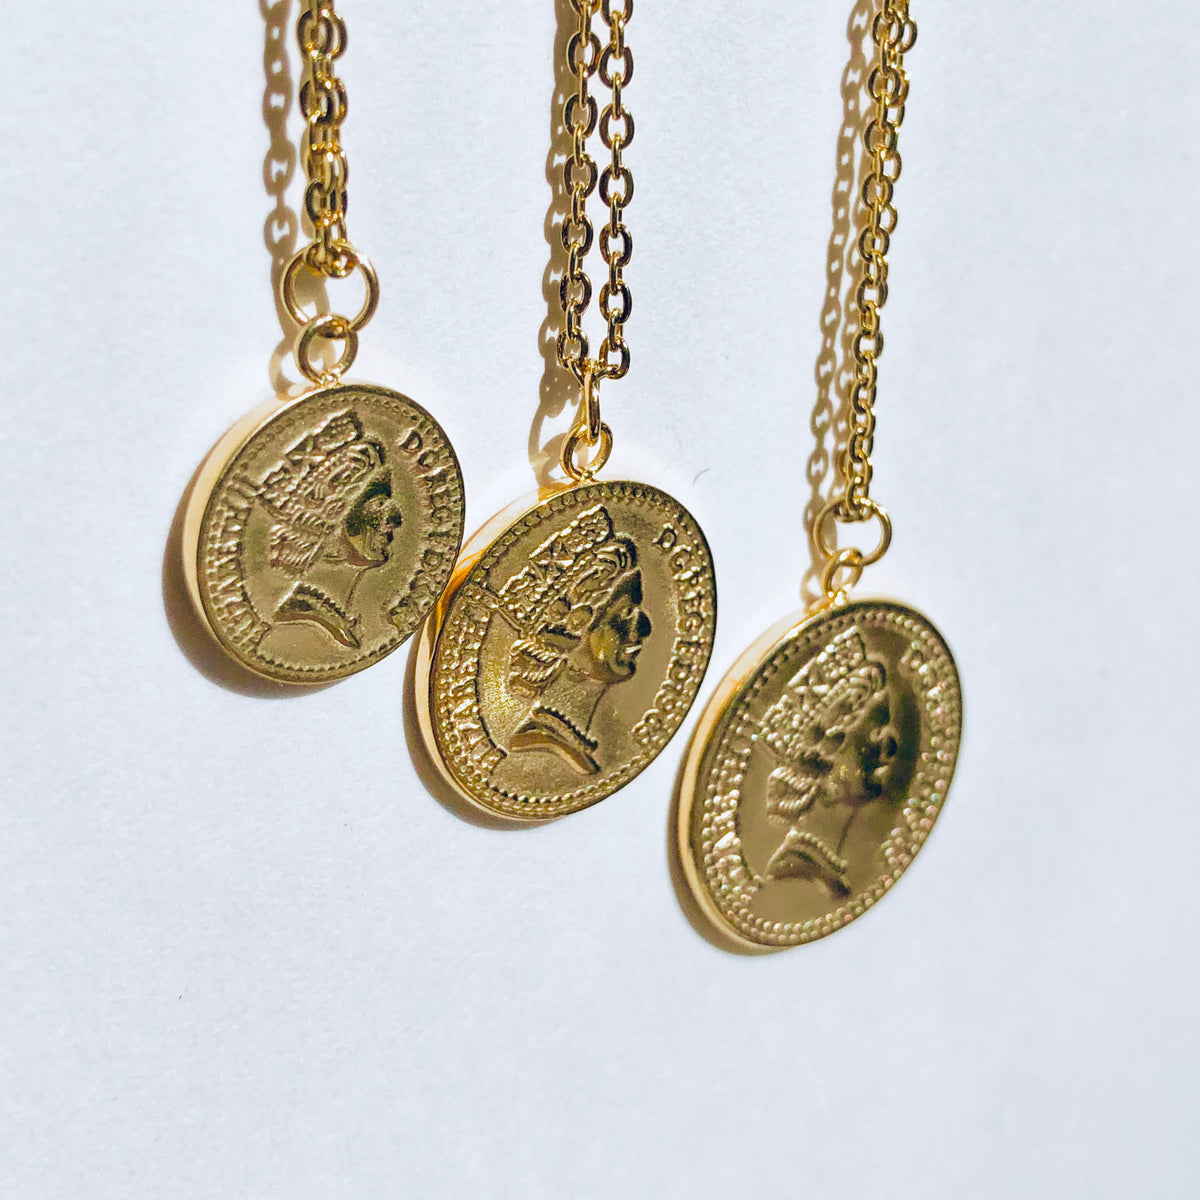 3 Tier Coin Necklace